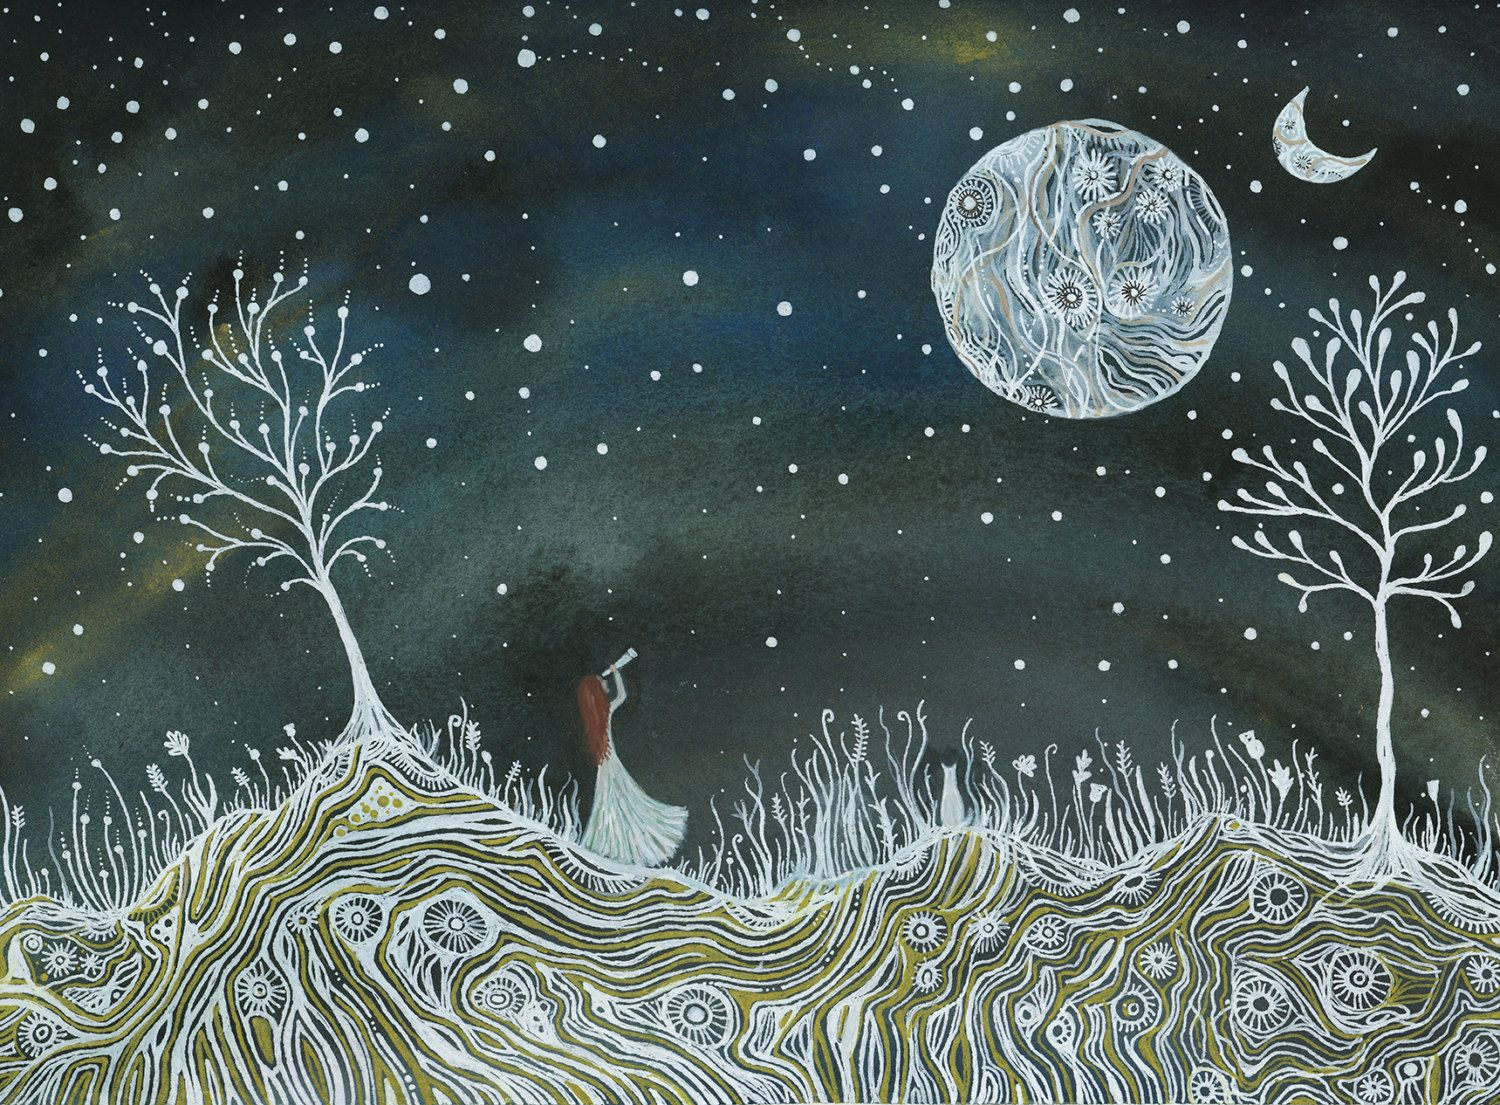 Fine art Print-Emma & the valley of two moons 02 by elisemahanfineart on Etsy https://www.etsy.com/listing/52255385/fine-art-print-emma-the-valley-of-two